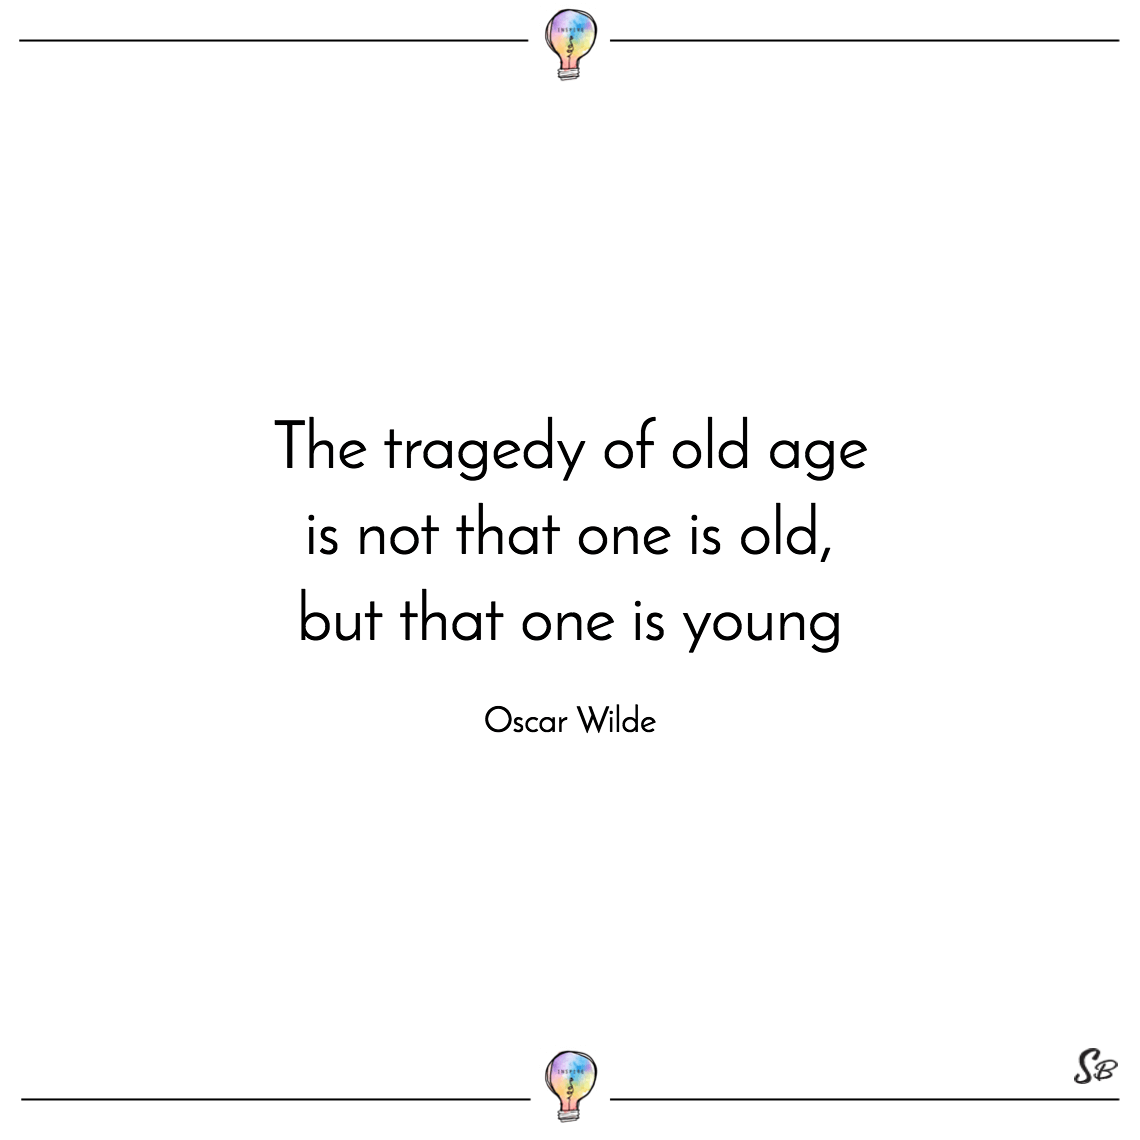 The tragedy of old age is not that one is old, but that one is young oscar wilde